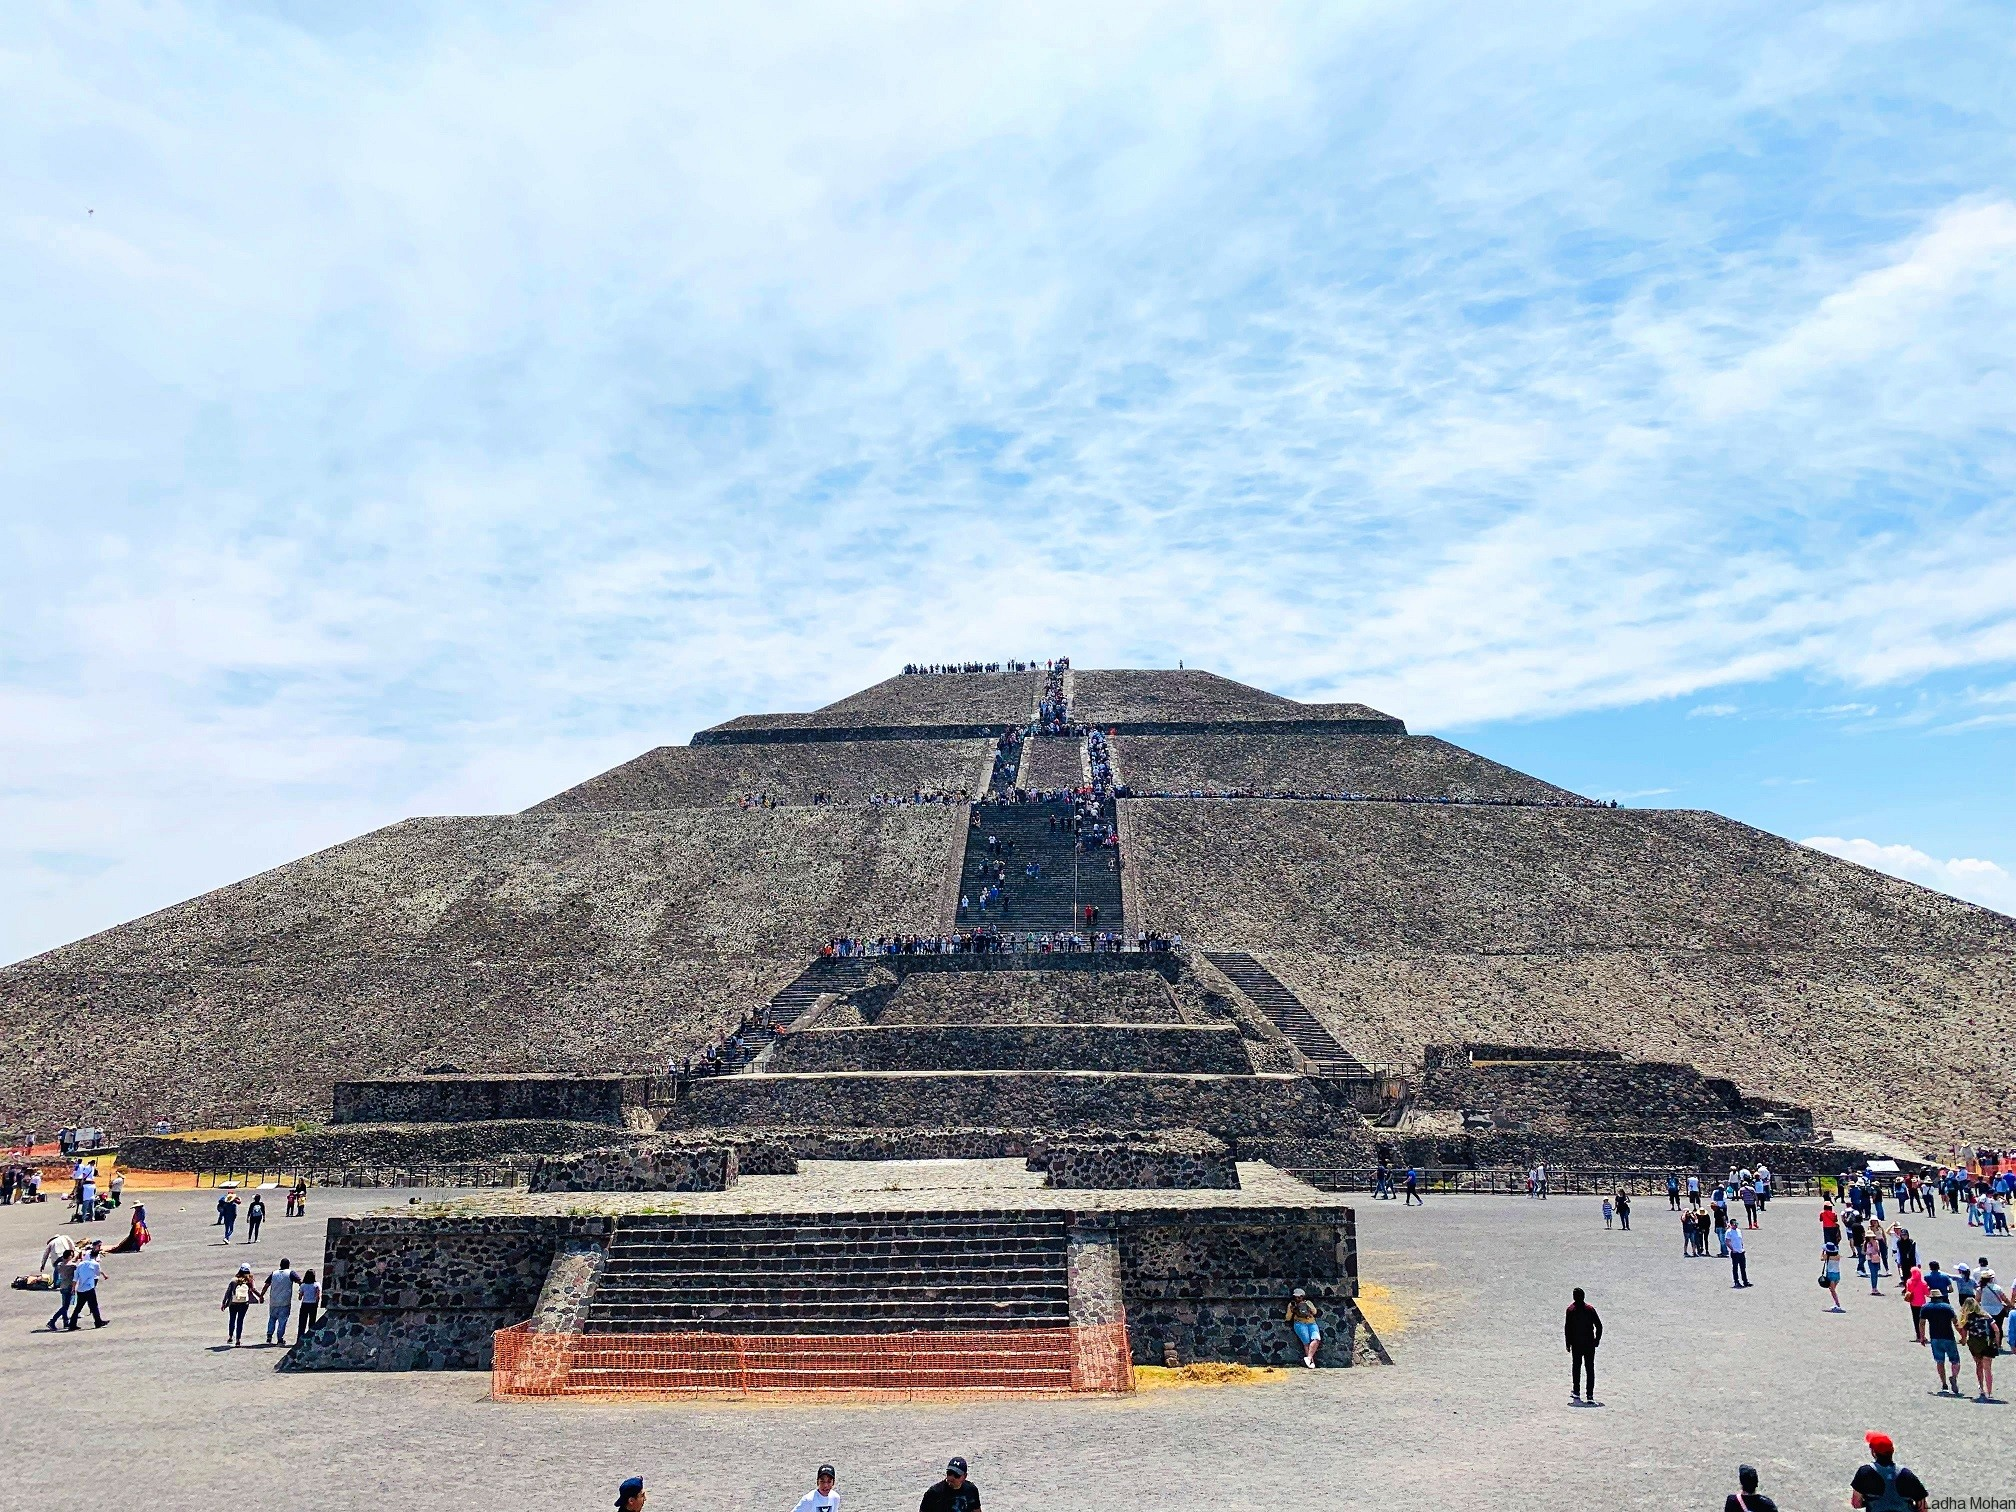 Pyramid of the Sun - Full View